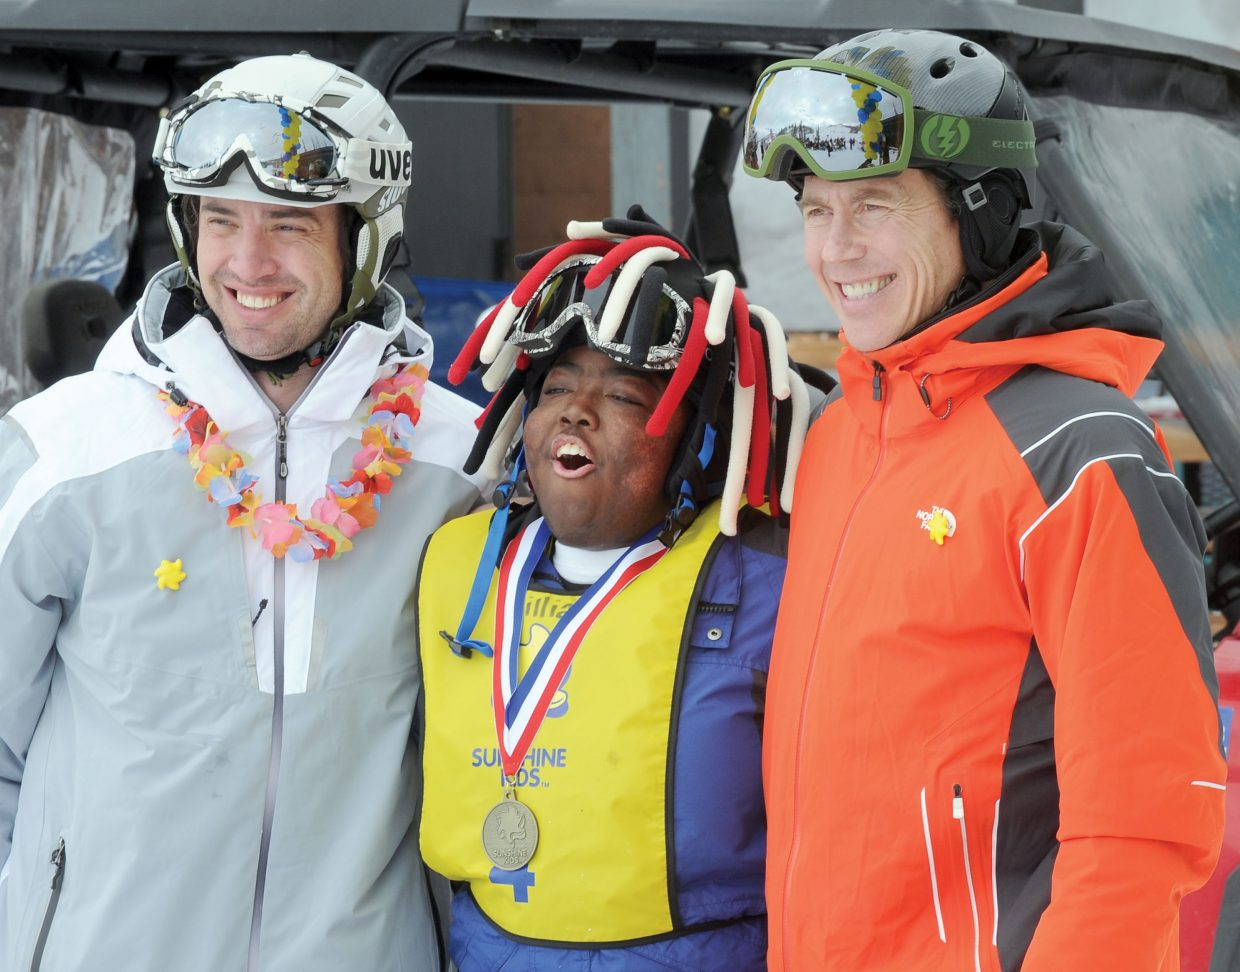 William Wallace, of Birmingham, Ala., gets his medal from Olympic silver medalist Johnny Spillane, left, and Sotheby's Cam Boyd. Sotheby's Reality has been a longtime supporter of STARS and the Sunshine Kids programs in Steamboat Springs.